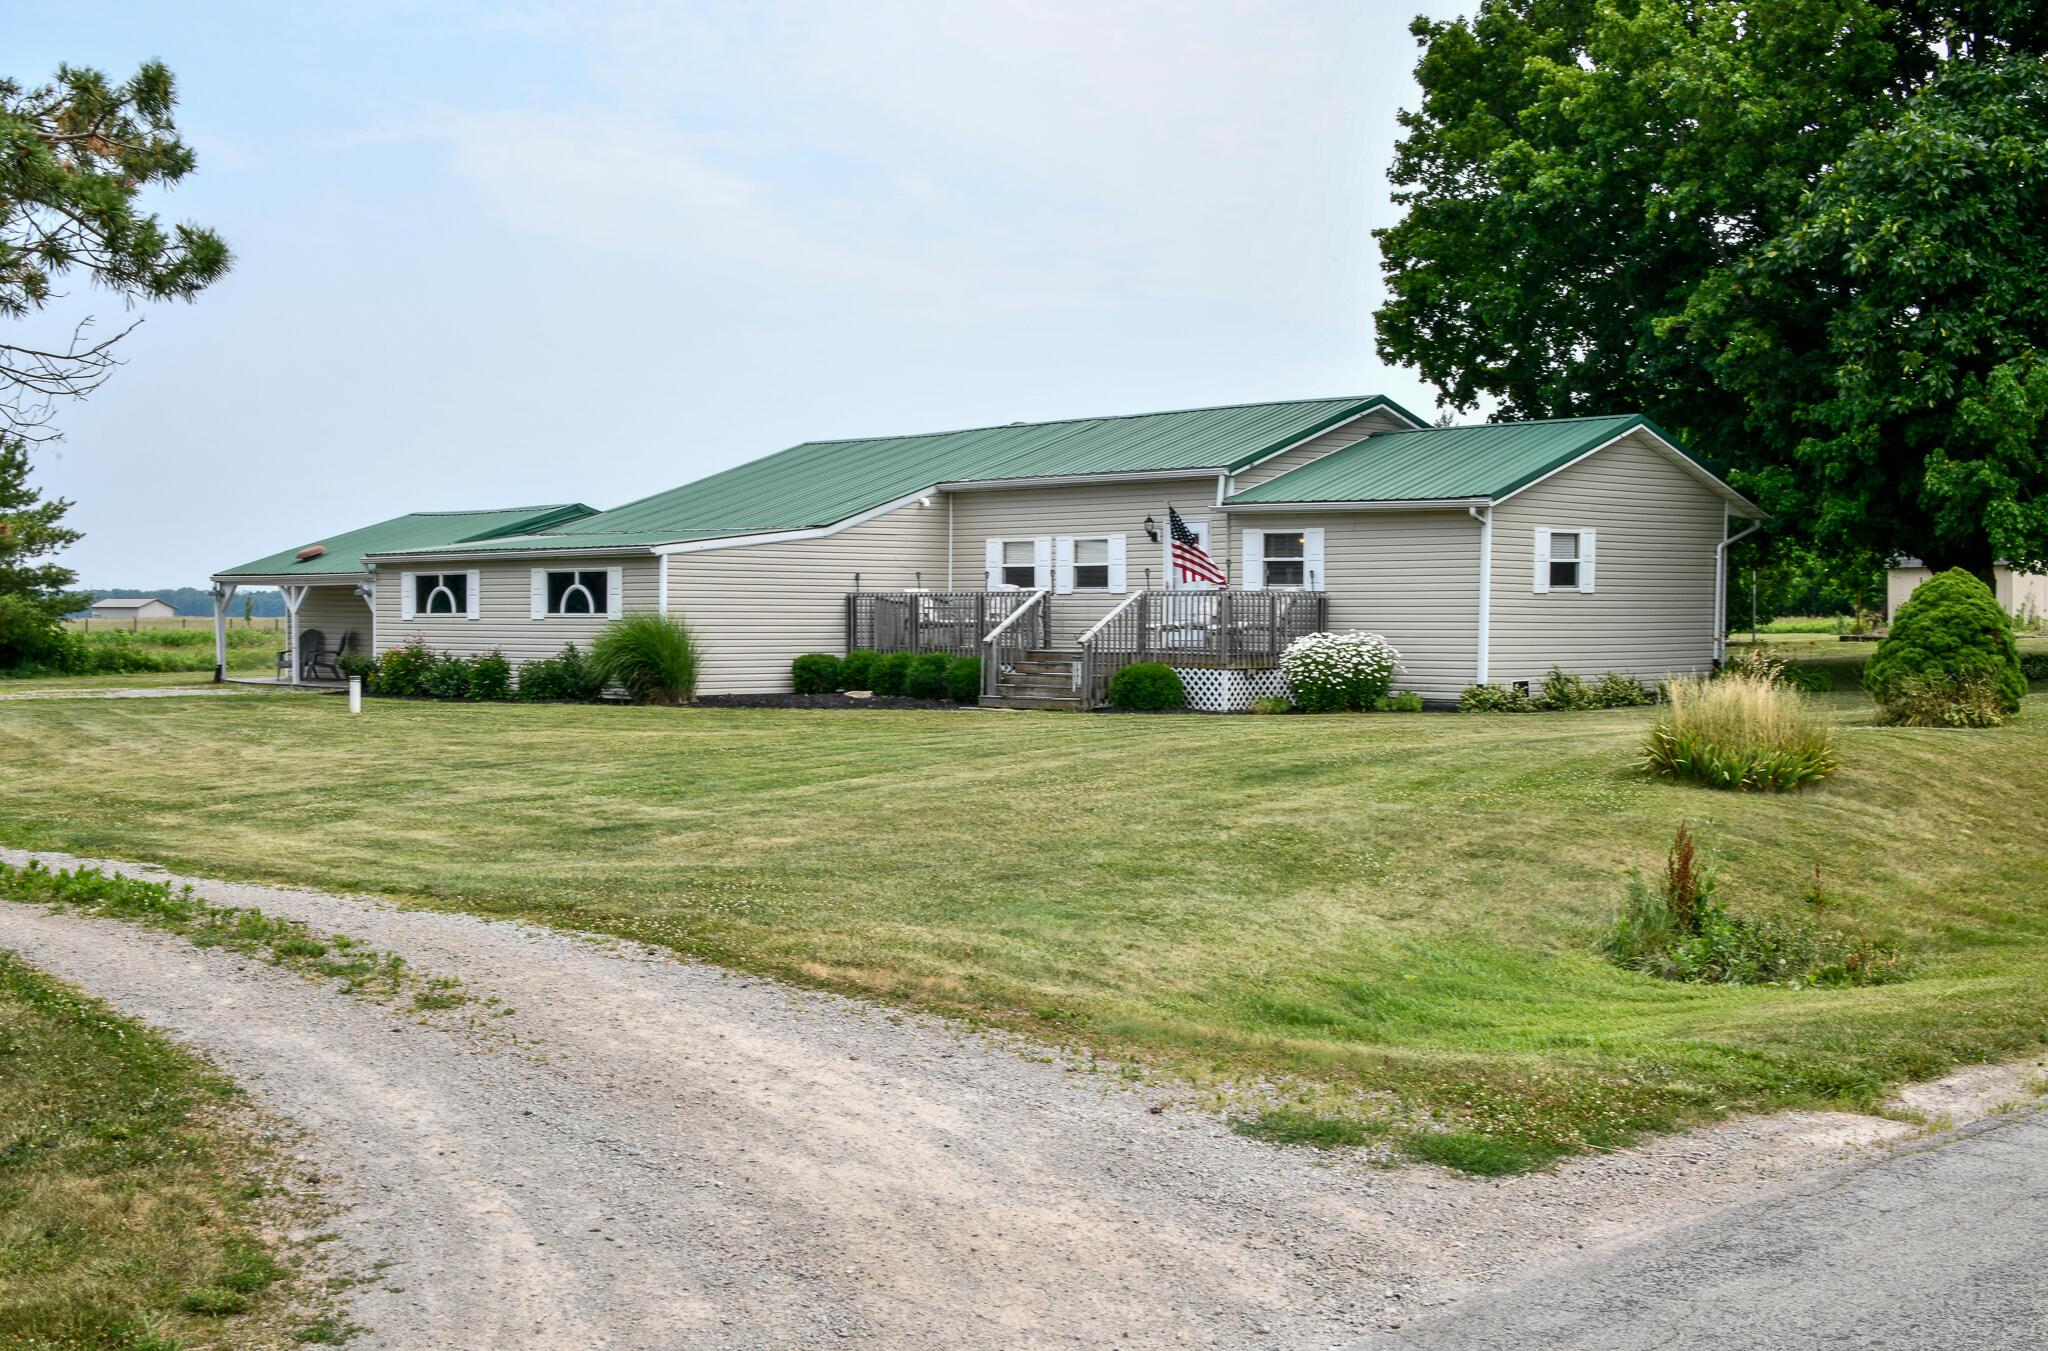 Drive Runs Between Home and Outbuildings